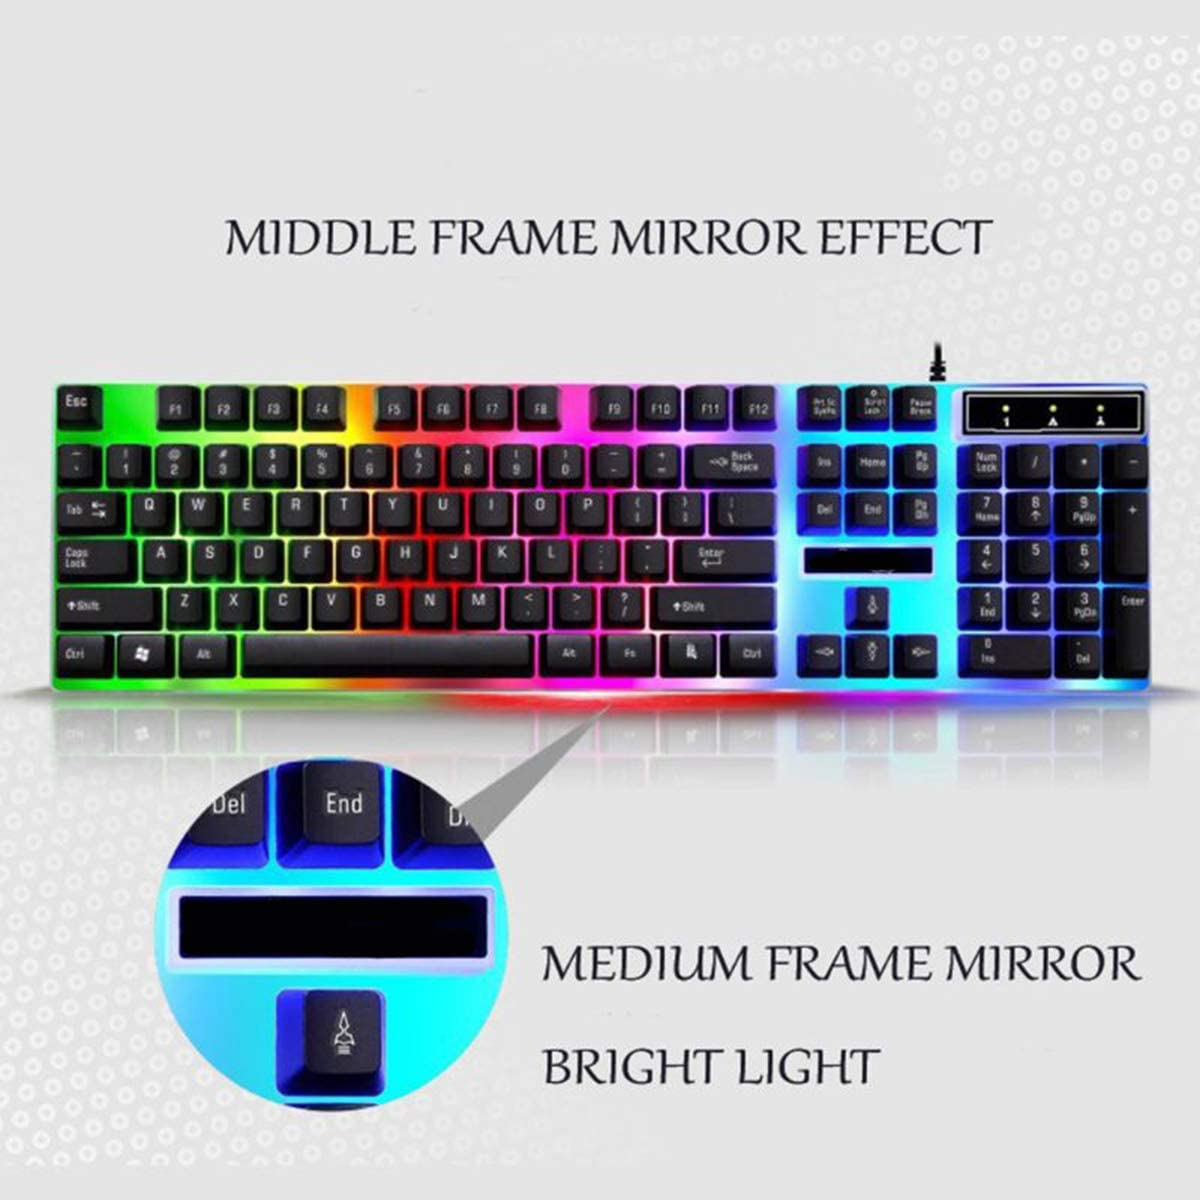 WMG/&GYJ Gaming Mouse and Keyboard,Full Sized Keyboard Ergonomic Keyboard and Mouse Combo for Windows USB Charging Light Keyboard